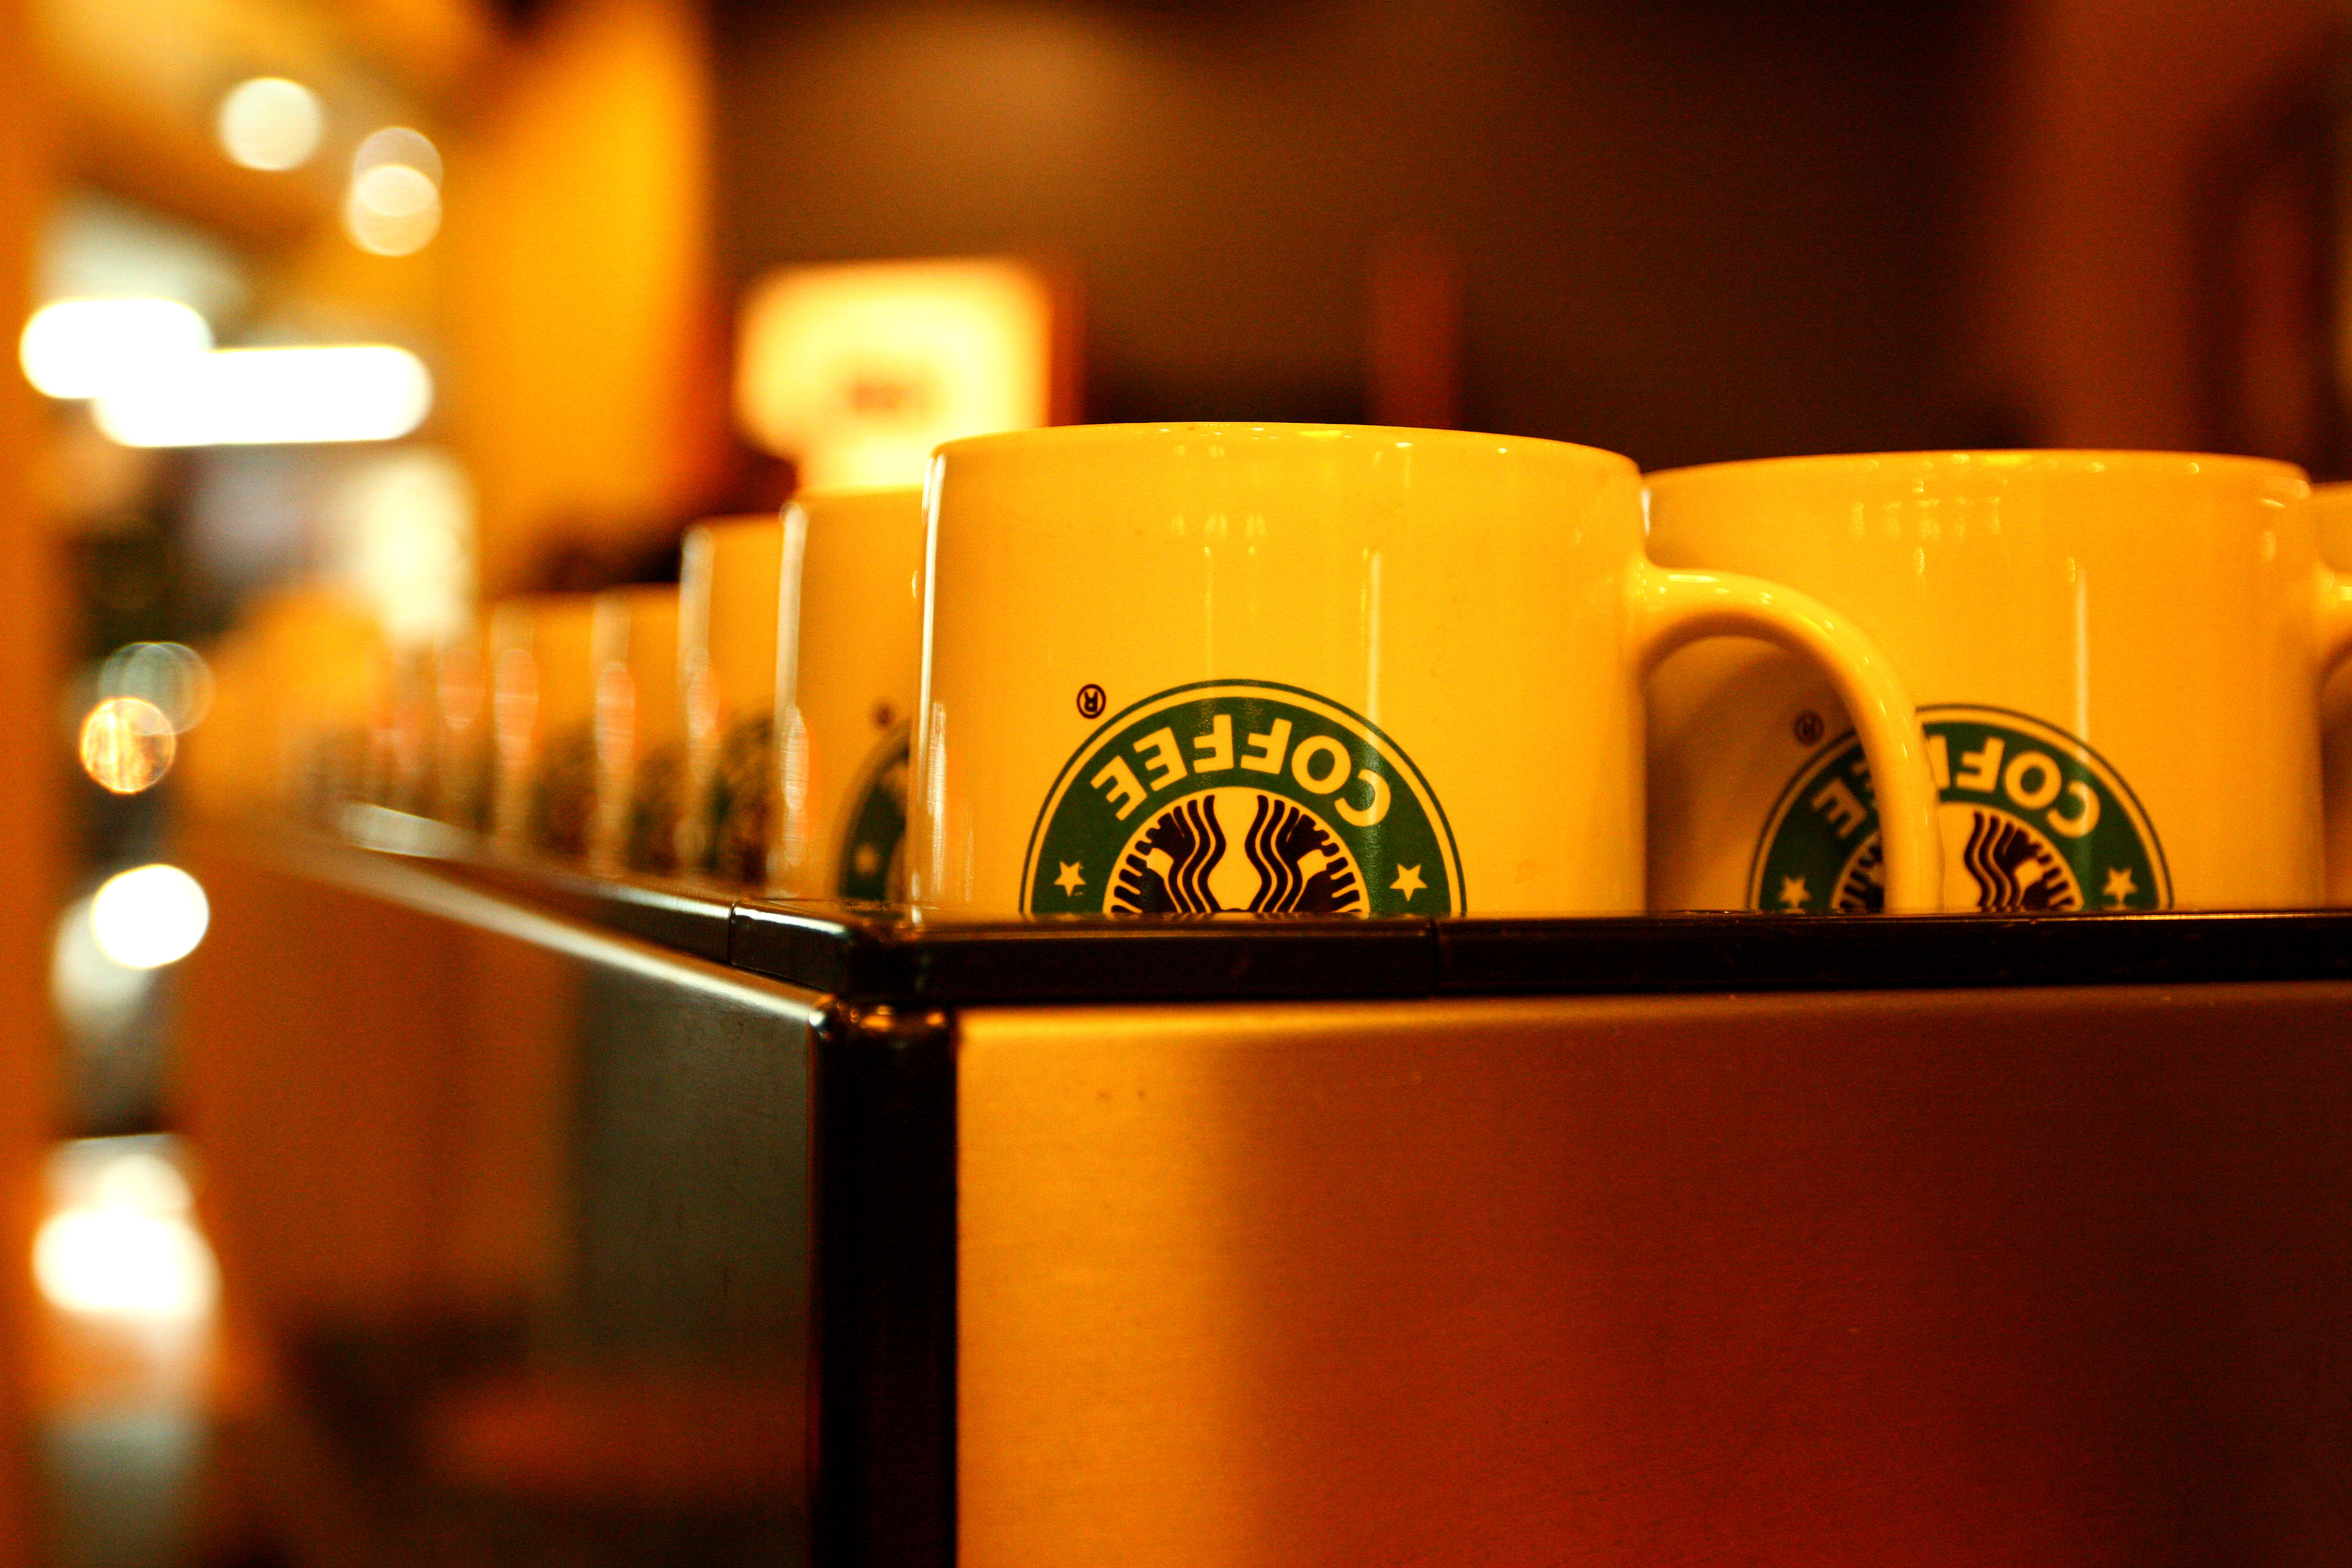 starbucks corporation Starbucks corporation (nasdaq:sbux): the coffee giant is debuting a protein blended cold brew in a pair of flavors.